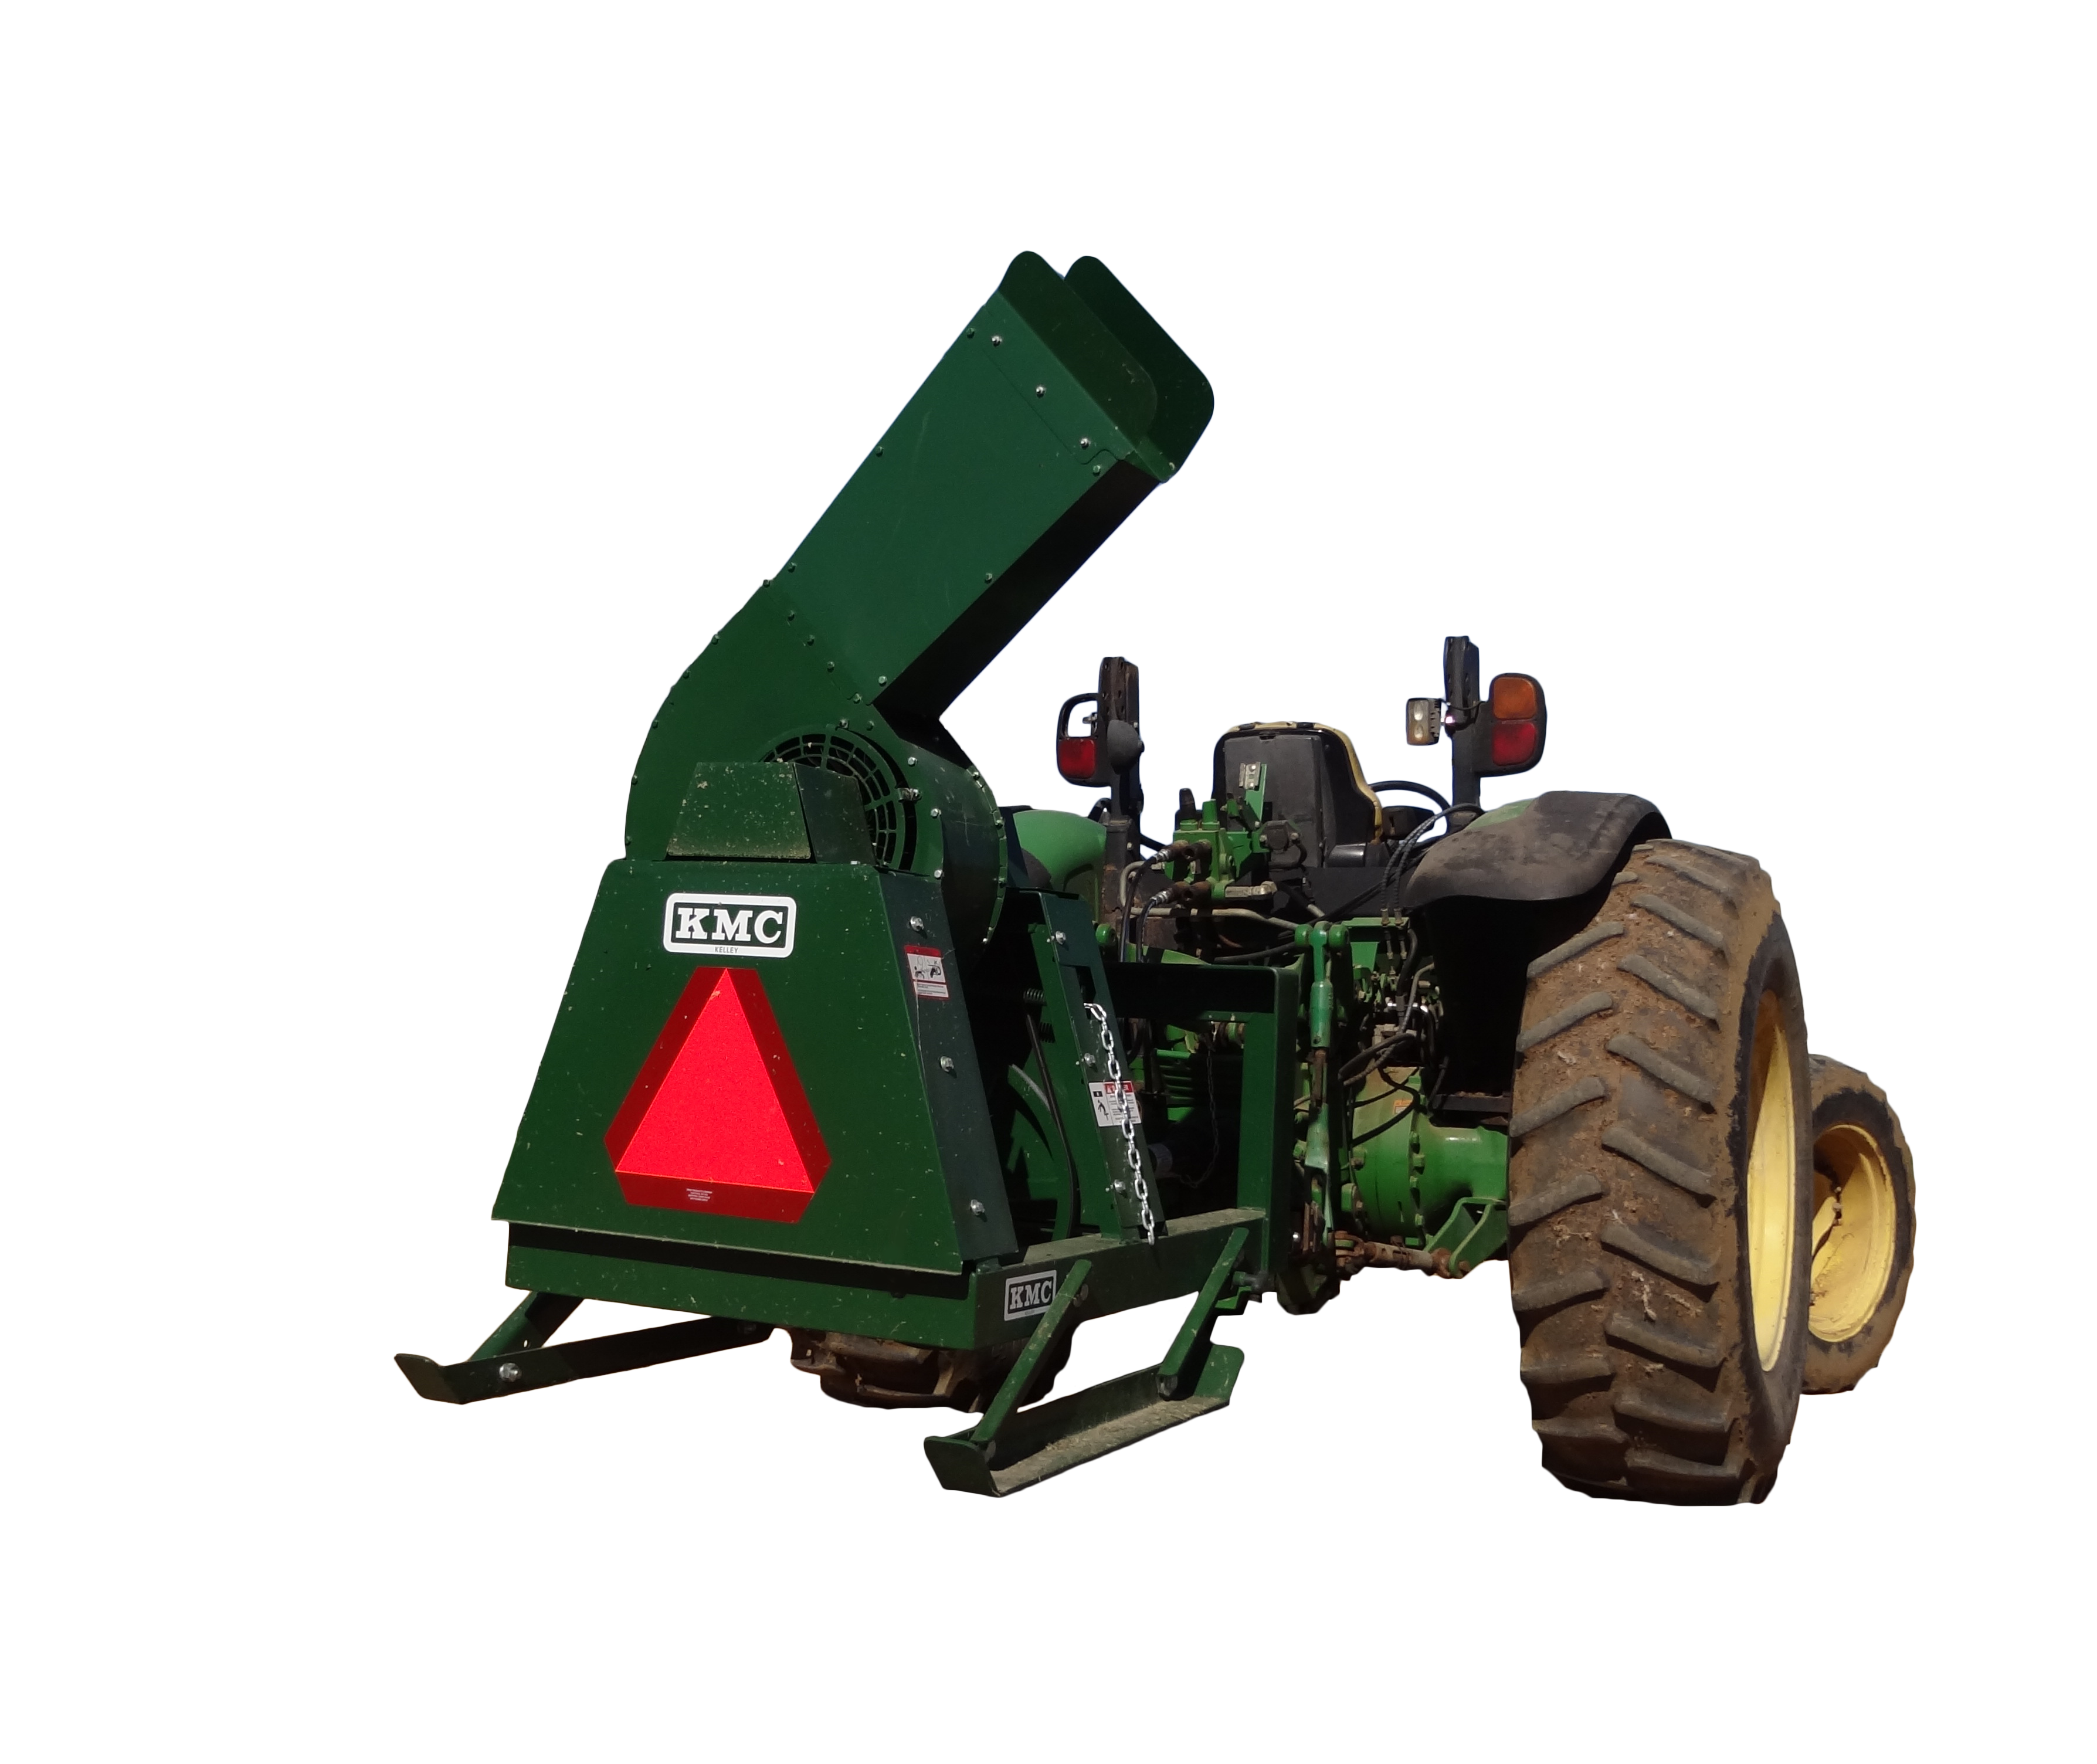 Blowerwithtractor